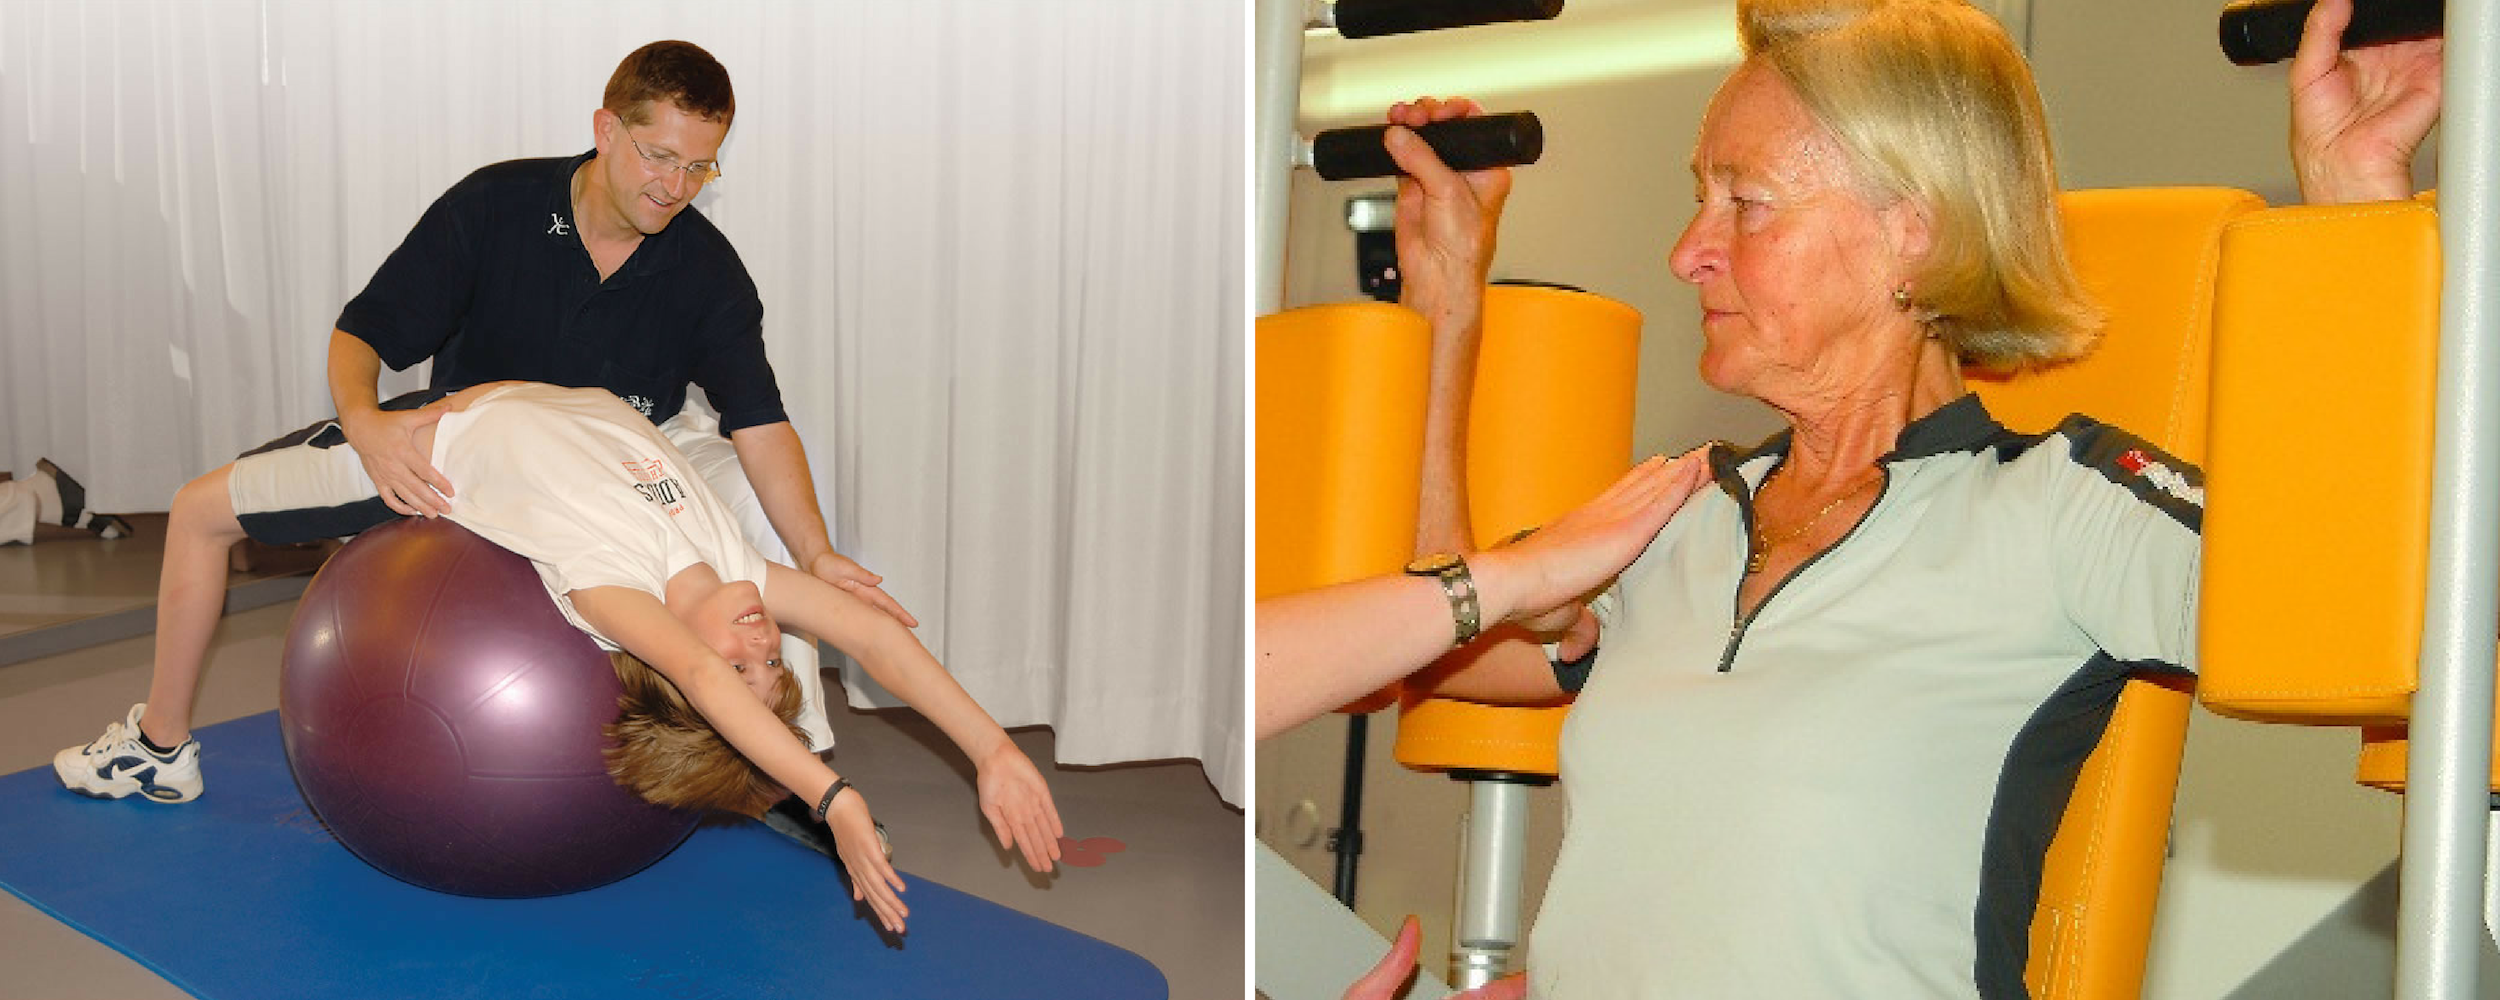 Wehrle Physiotherapie